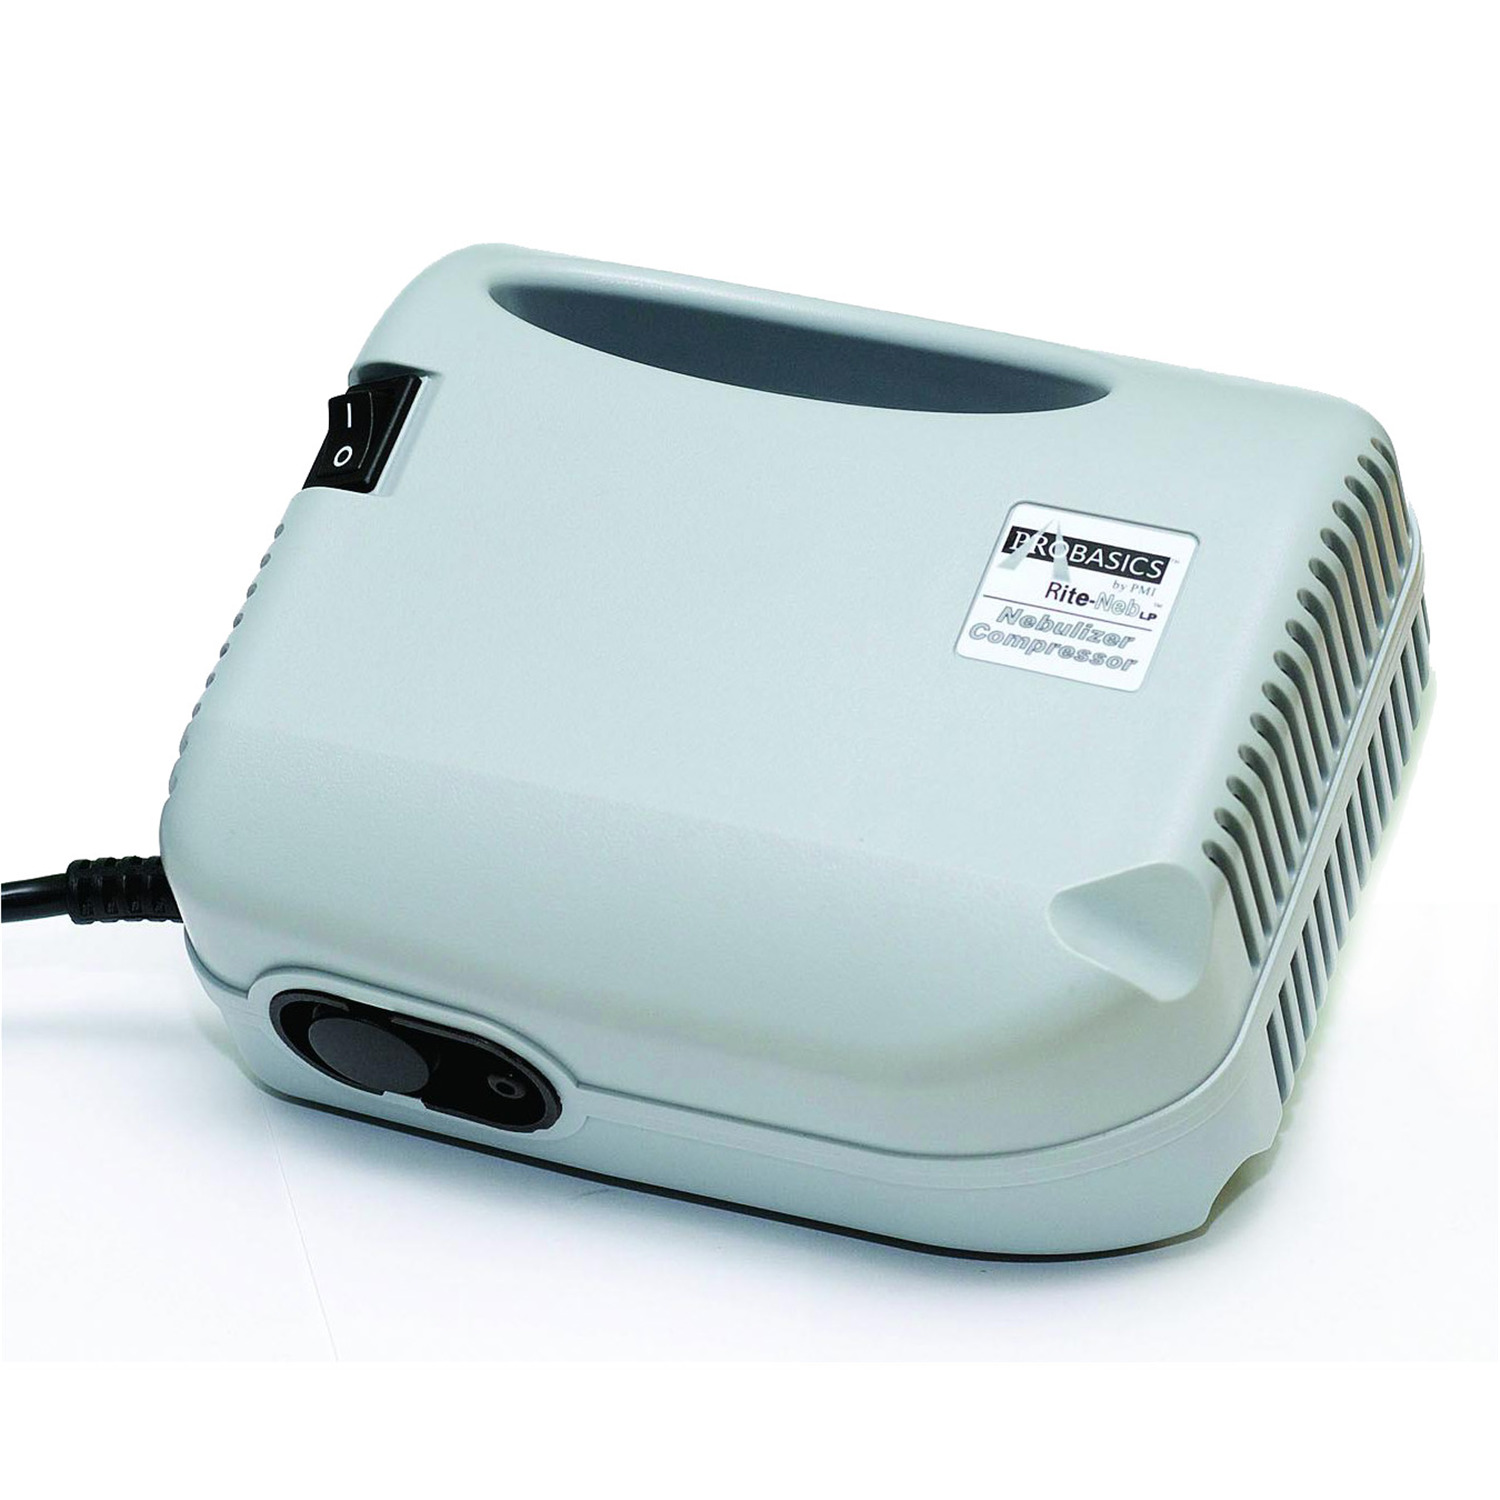 machine used for asthma